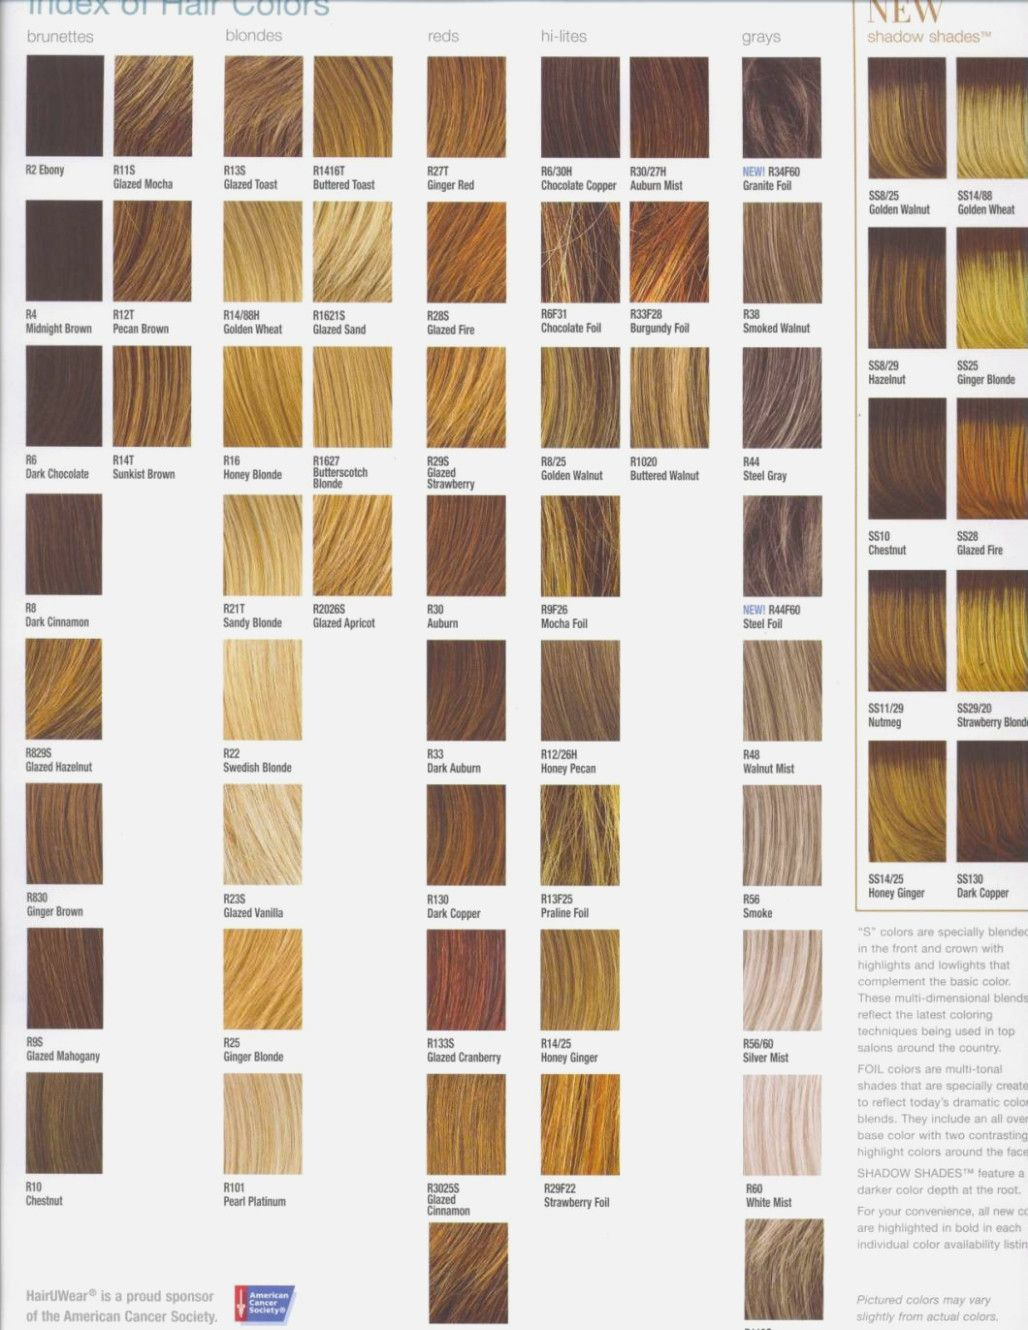 Matrix Socolor Hair Color In 2016 Amazing Photo Haircolorideas Org Matrix Hair Color Matrix Hair Color Chart Beauty Hair Color